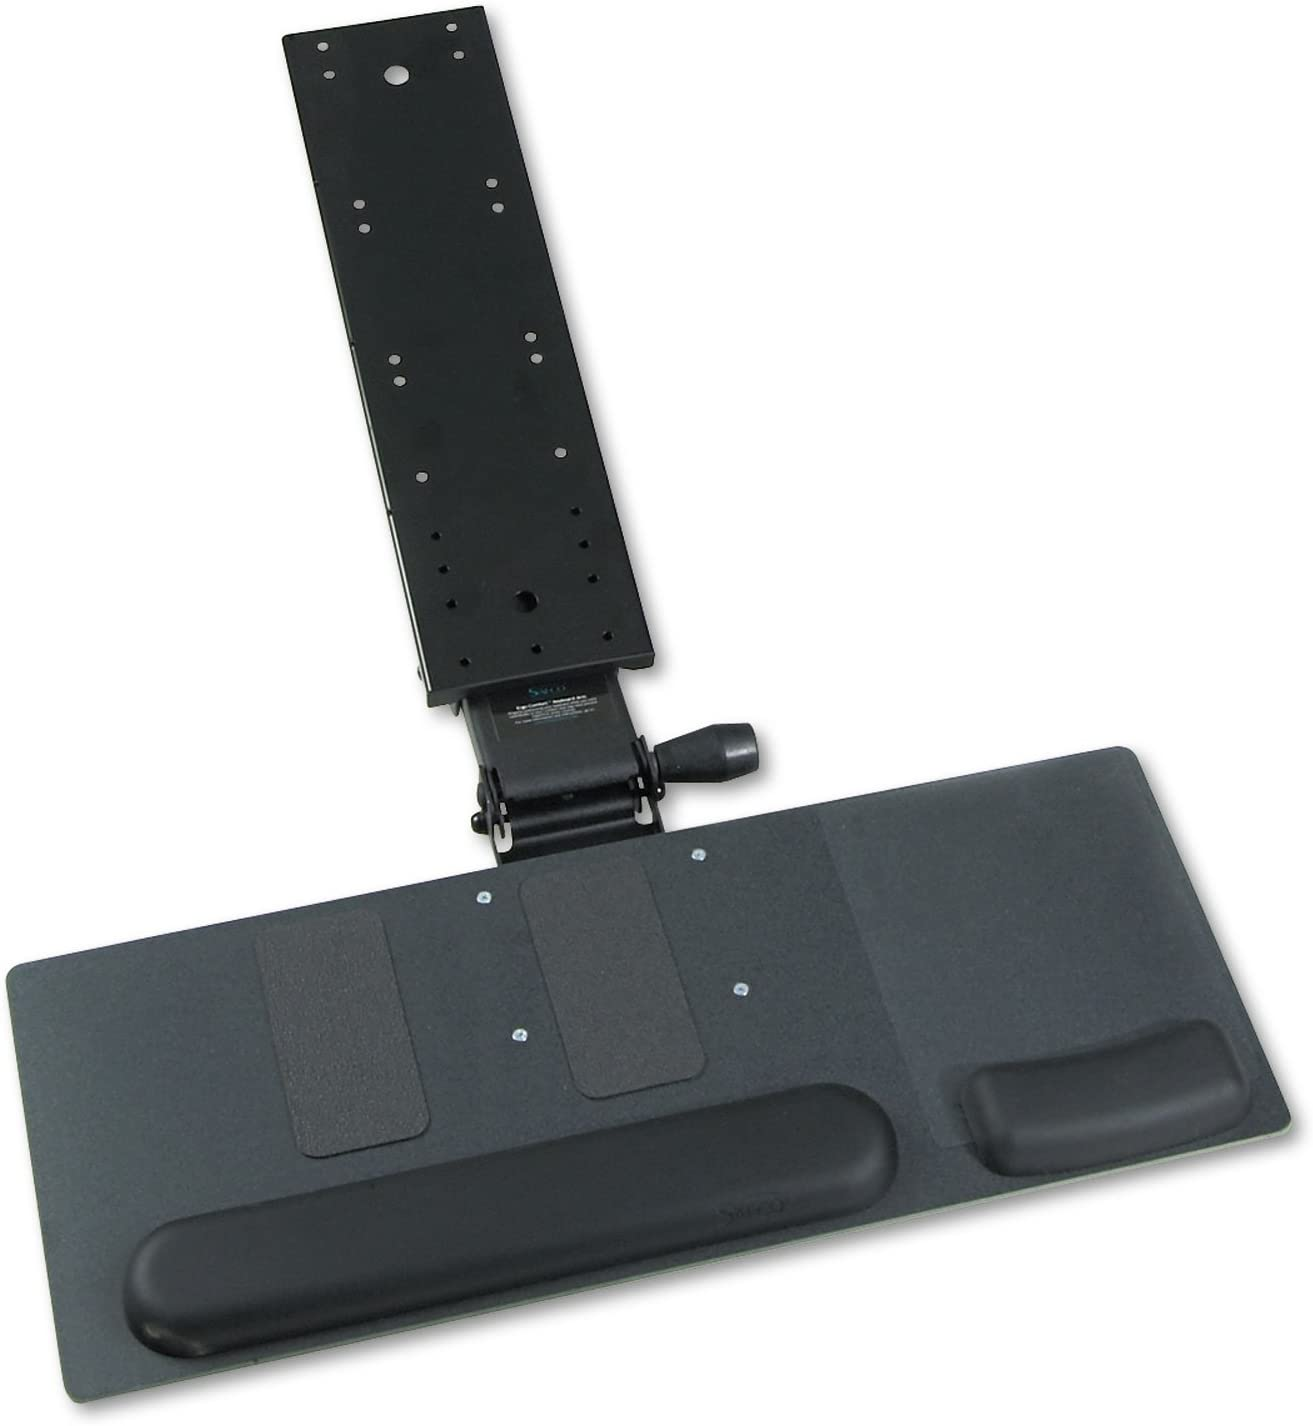 Safco Ergo-Comfort Articulating Platform Max It is very popular 63% OFF Mouse Keyboard